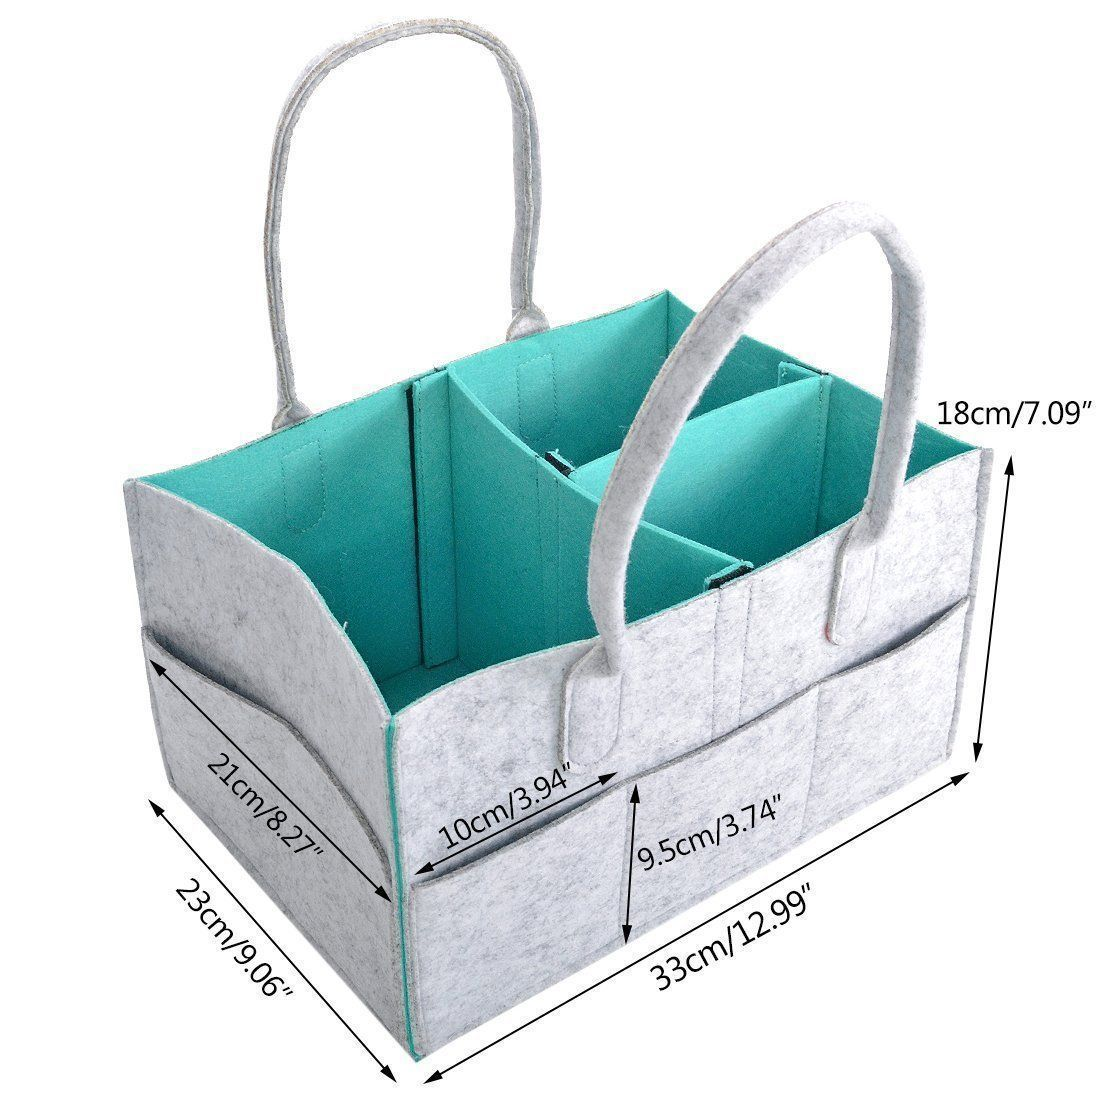 Diaper Caddy by My GOGO Baby Nursery Diaper Tote Bag Large Portable ...